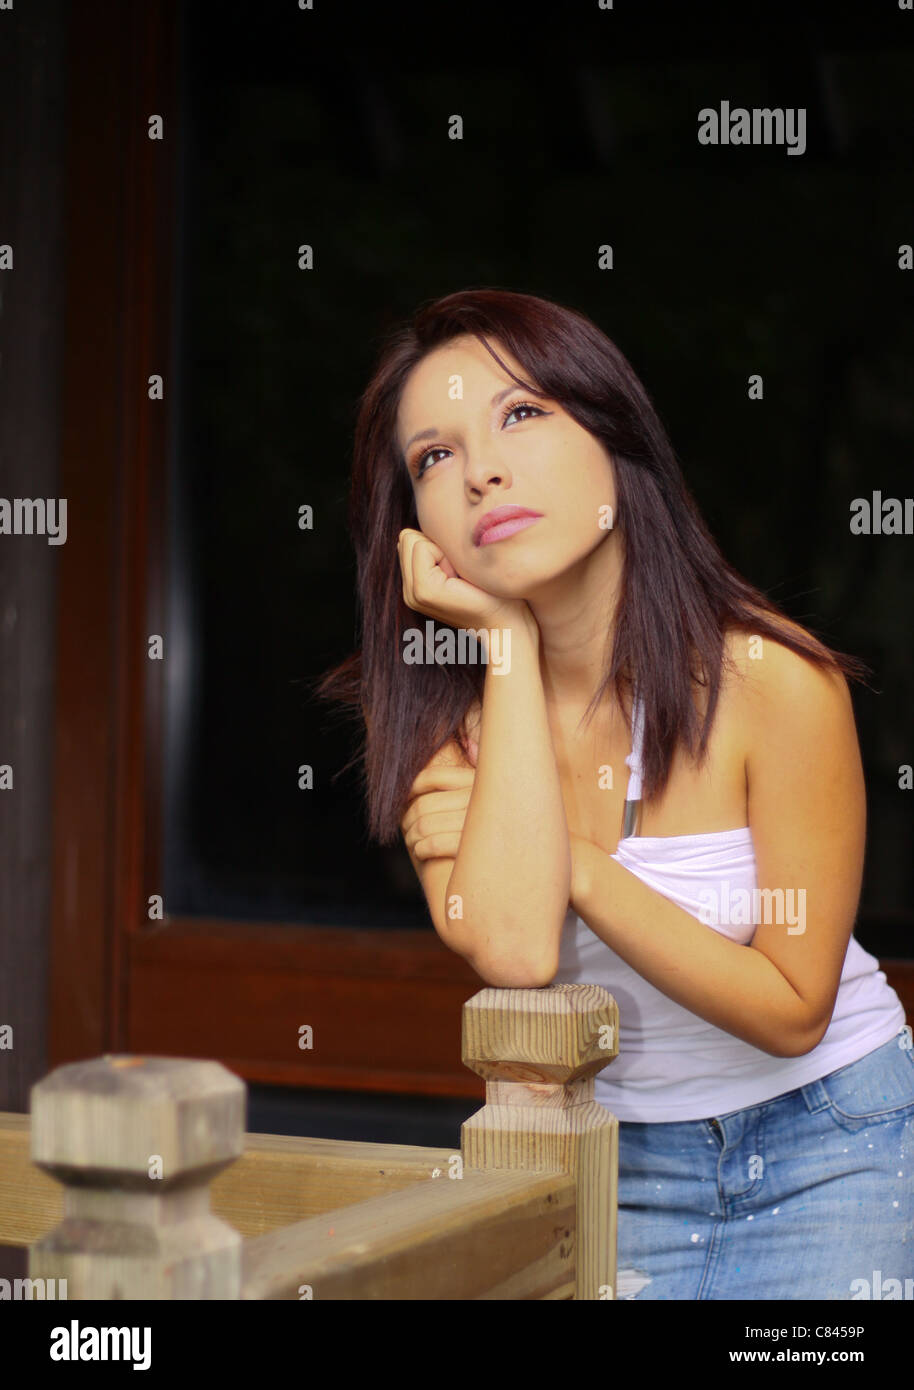 a lovely young lady with her head on her hand - Stock Image